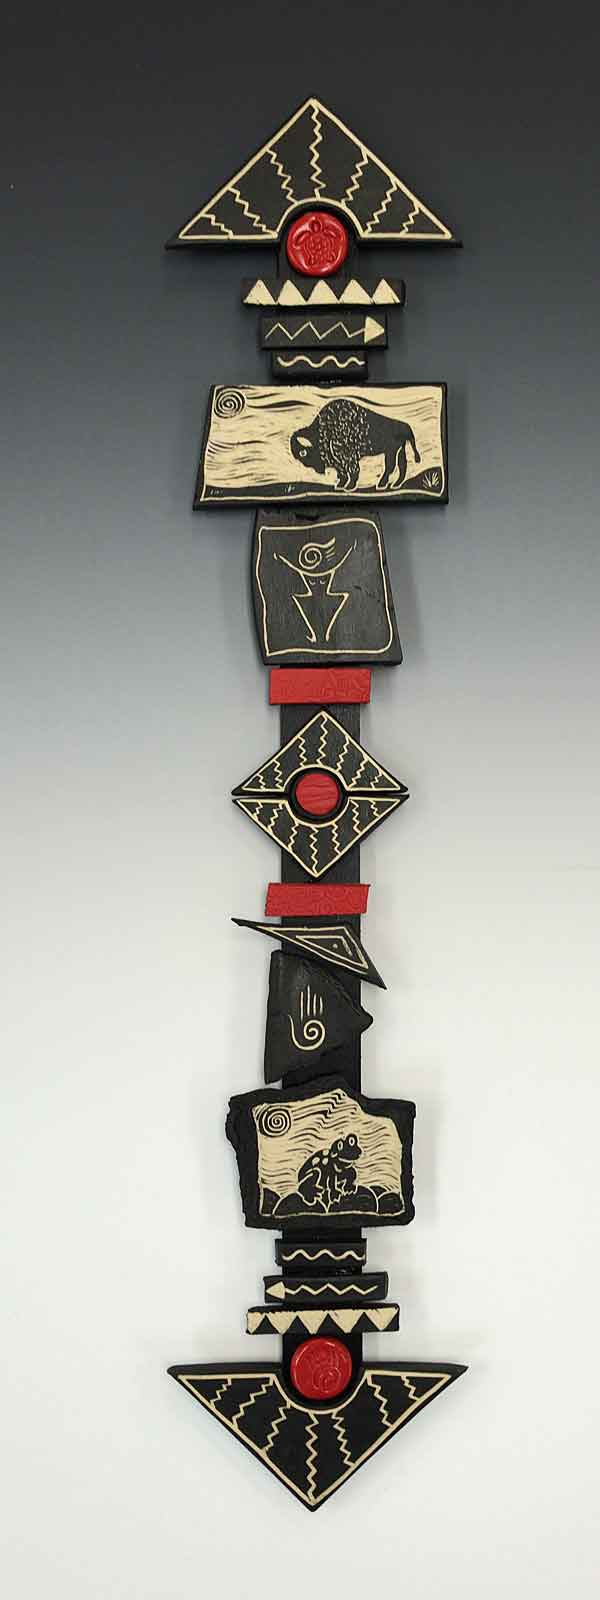 Totem stick black white and red sgraffito